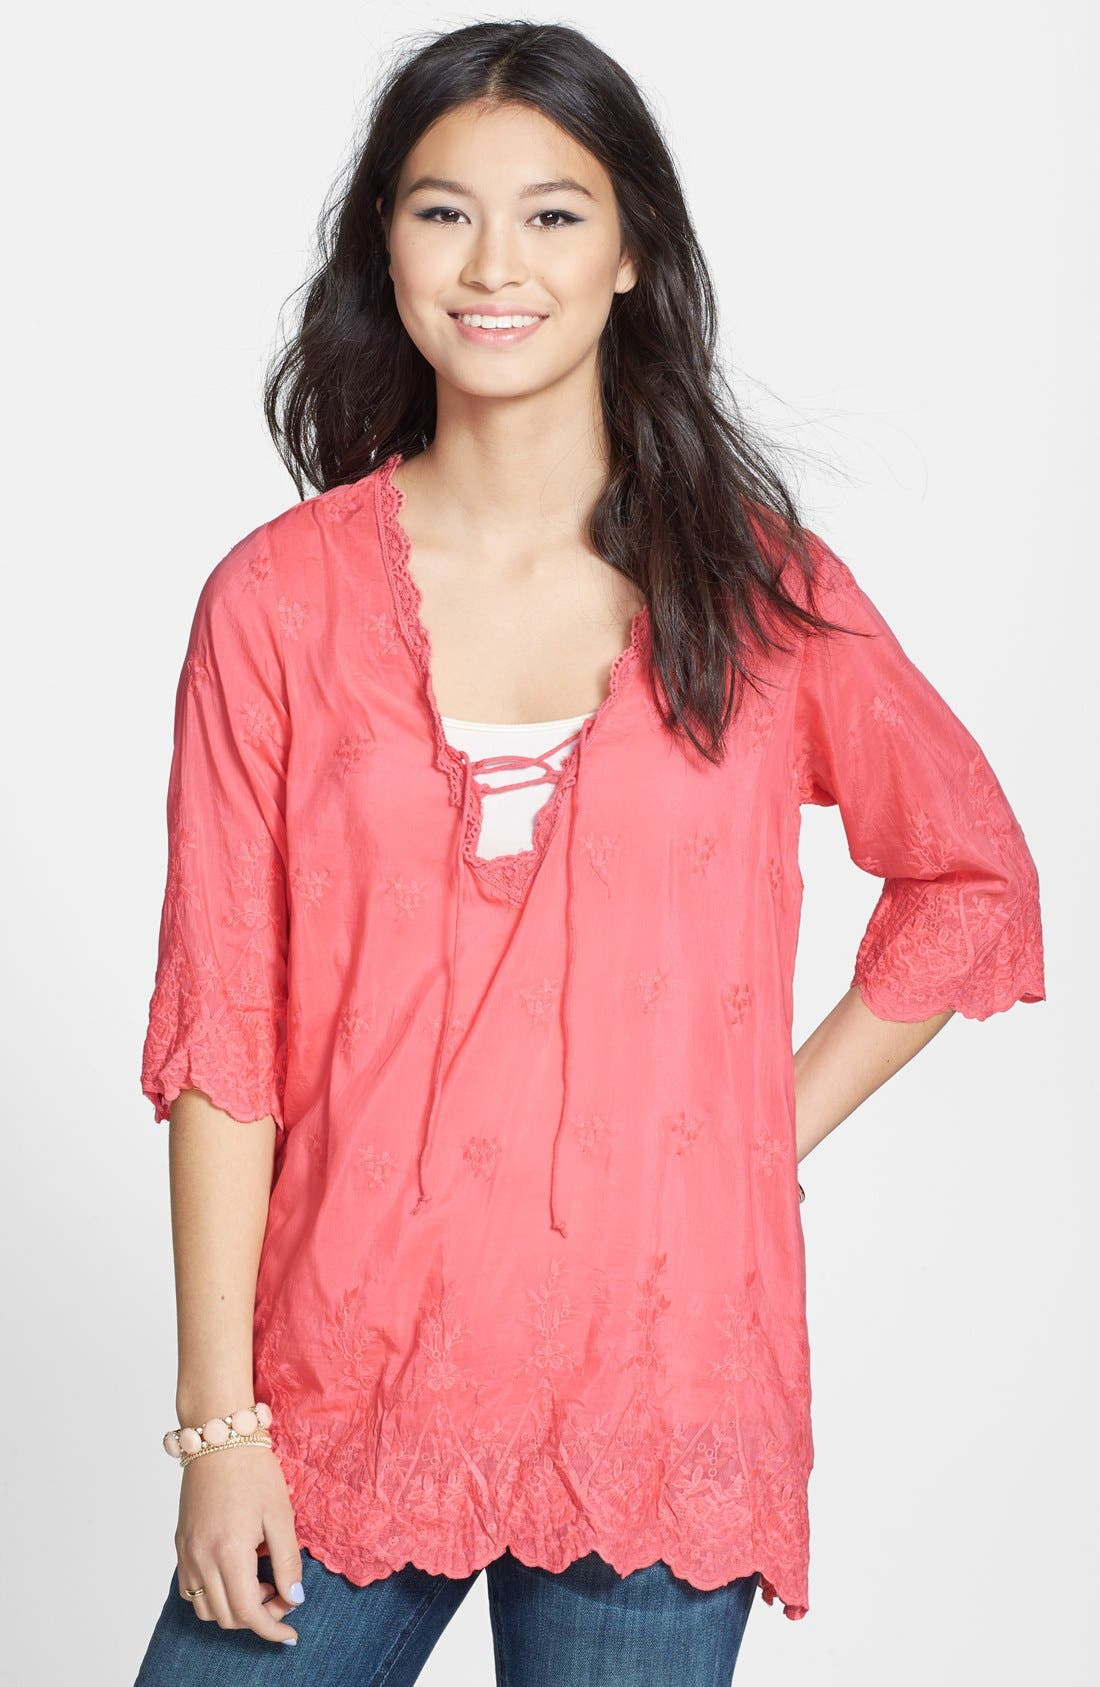 Alternate Image 1 Selected - Sorrento Embroidered Peasant Top (Juniors)